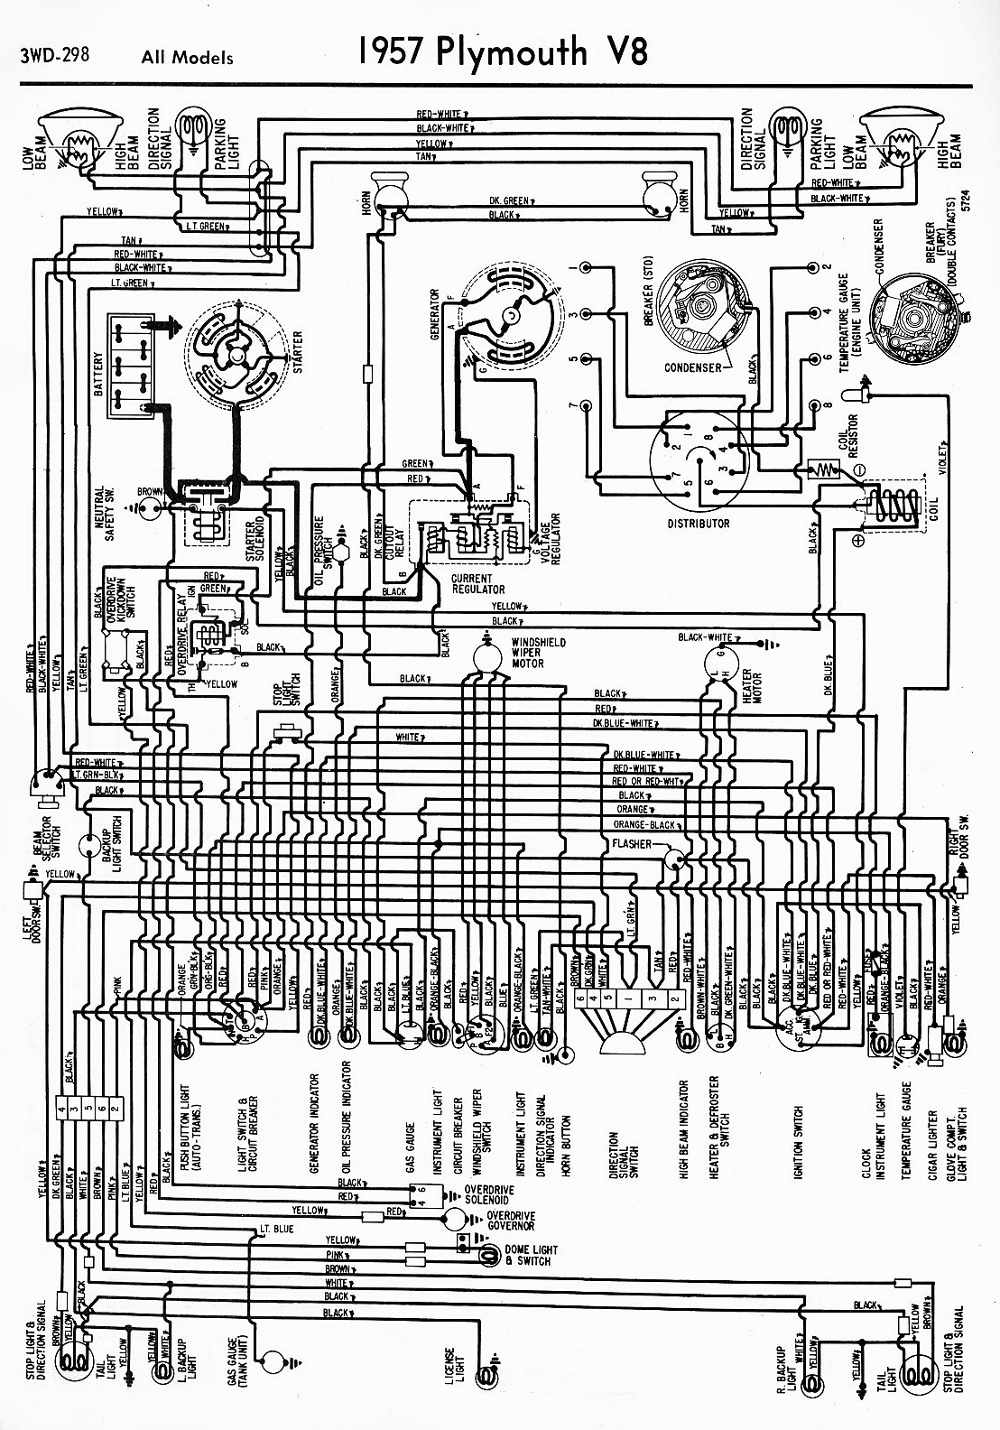 Wiring Diagram 1953 Plymouth Library 1946 Ford A 6v Positive Ground To 12vtonwire Diagrams Automotive Trusted U2022 3 Way Switch 1939